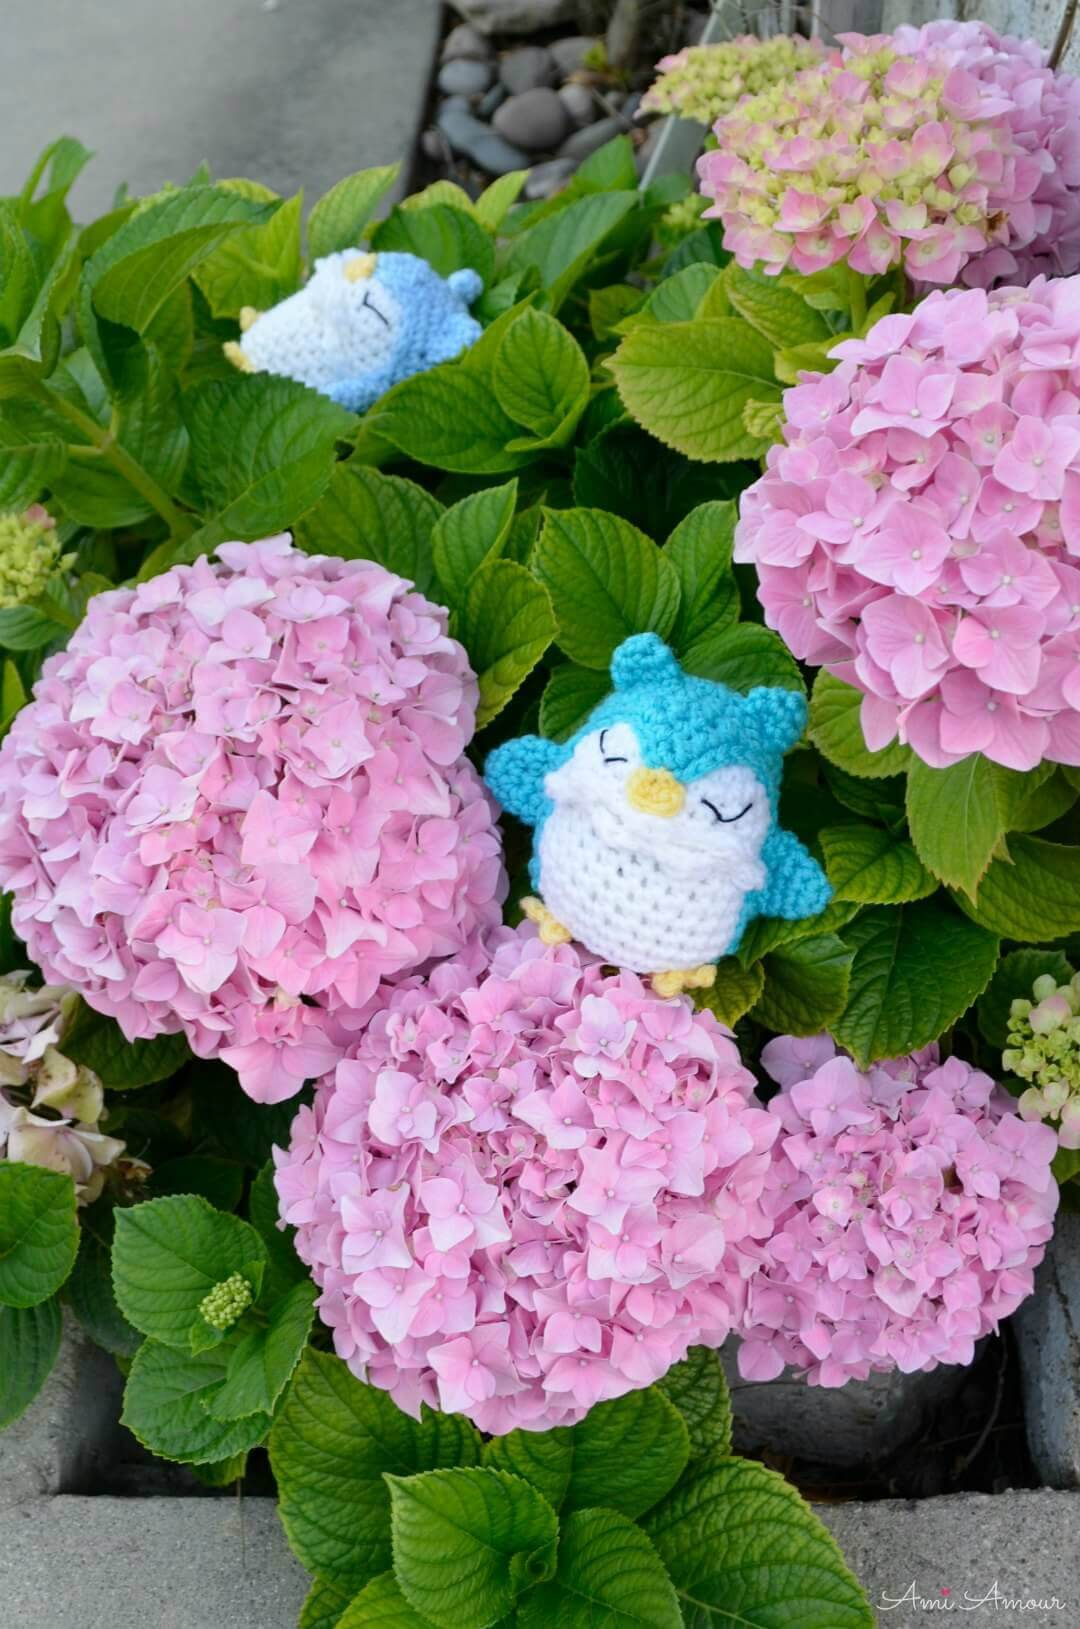 Blue hued Crochet Owls on top a bed of Pink Hydrangeas